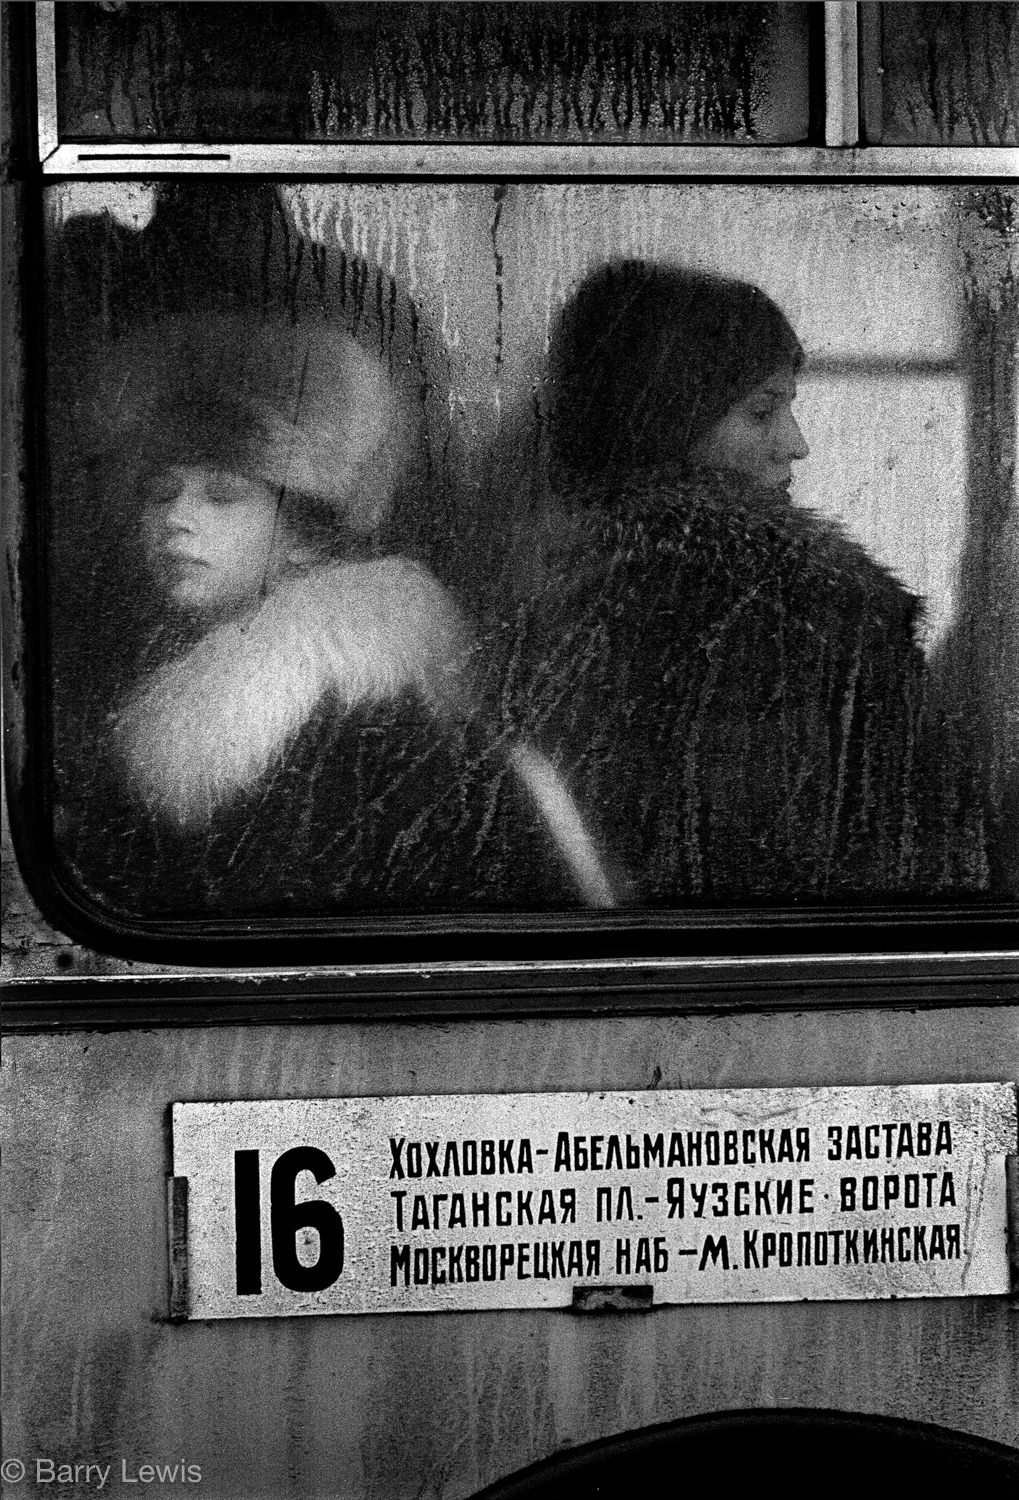 Number 16 bus, Moscow, 1972